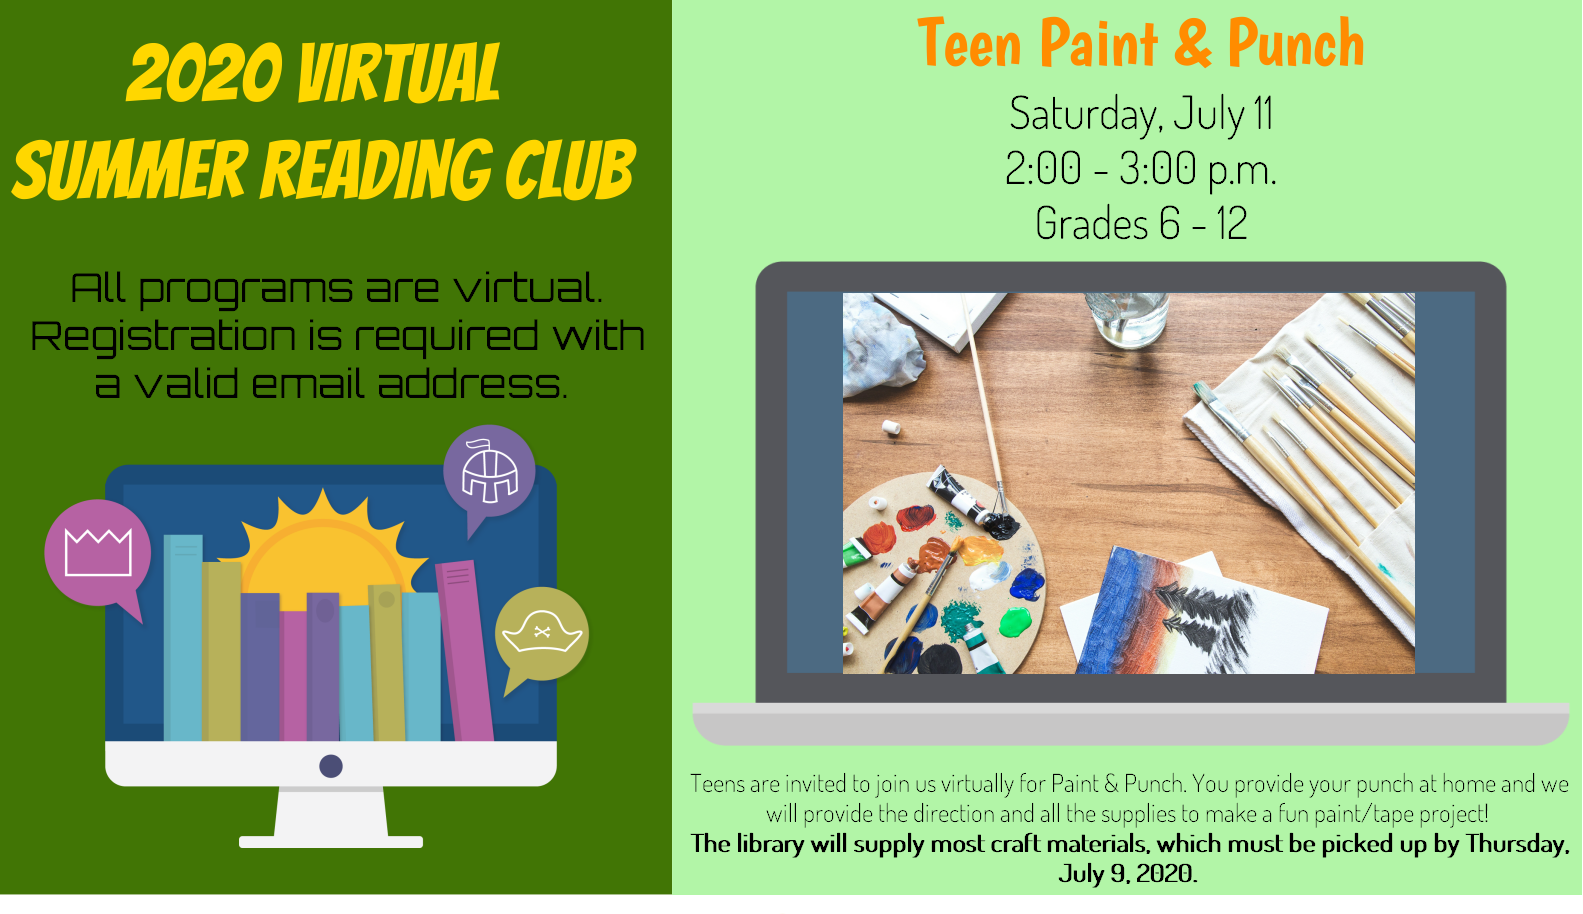 Teen Paint and Punch